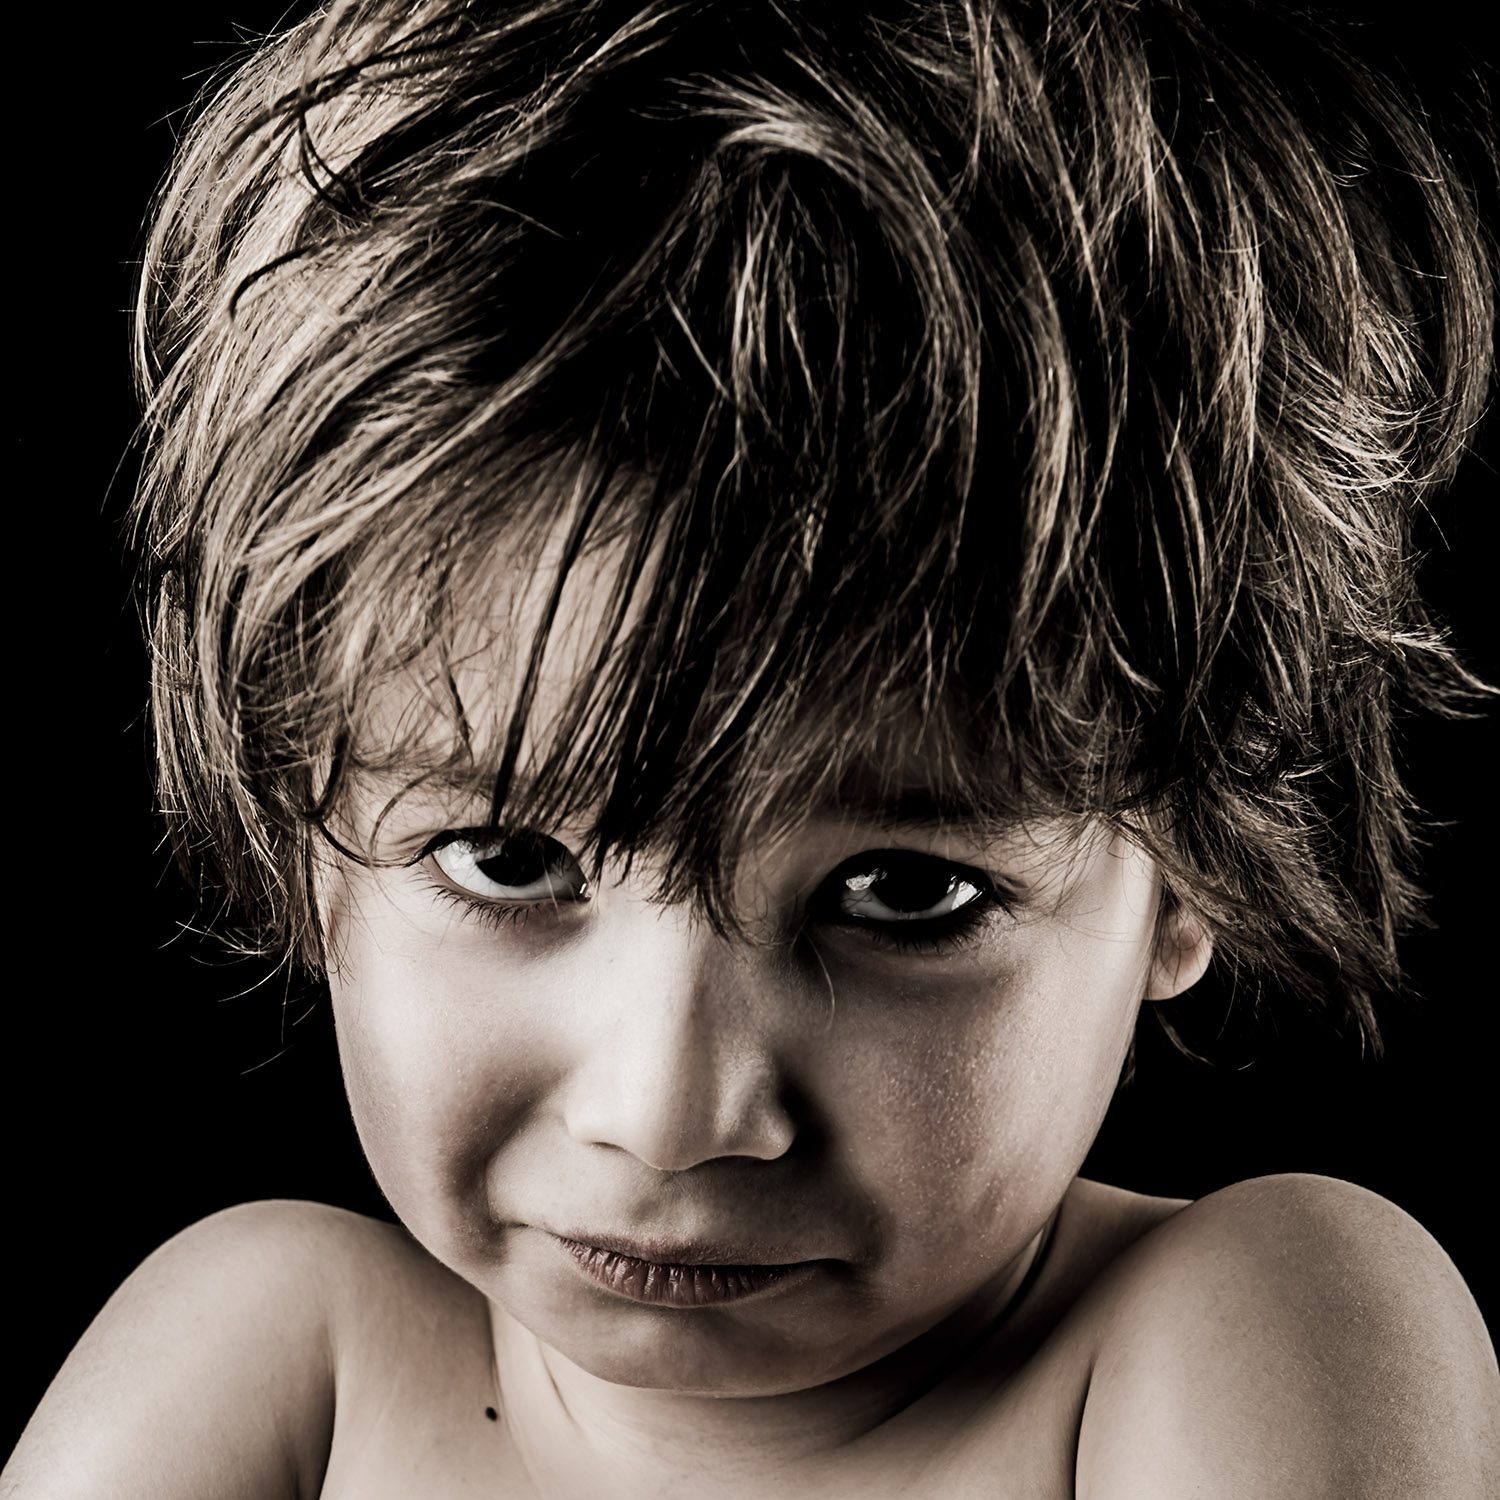 Portrait d'enfant - Photographie d'art par Idan Wizen - I'm sure you did what you could